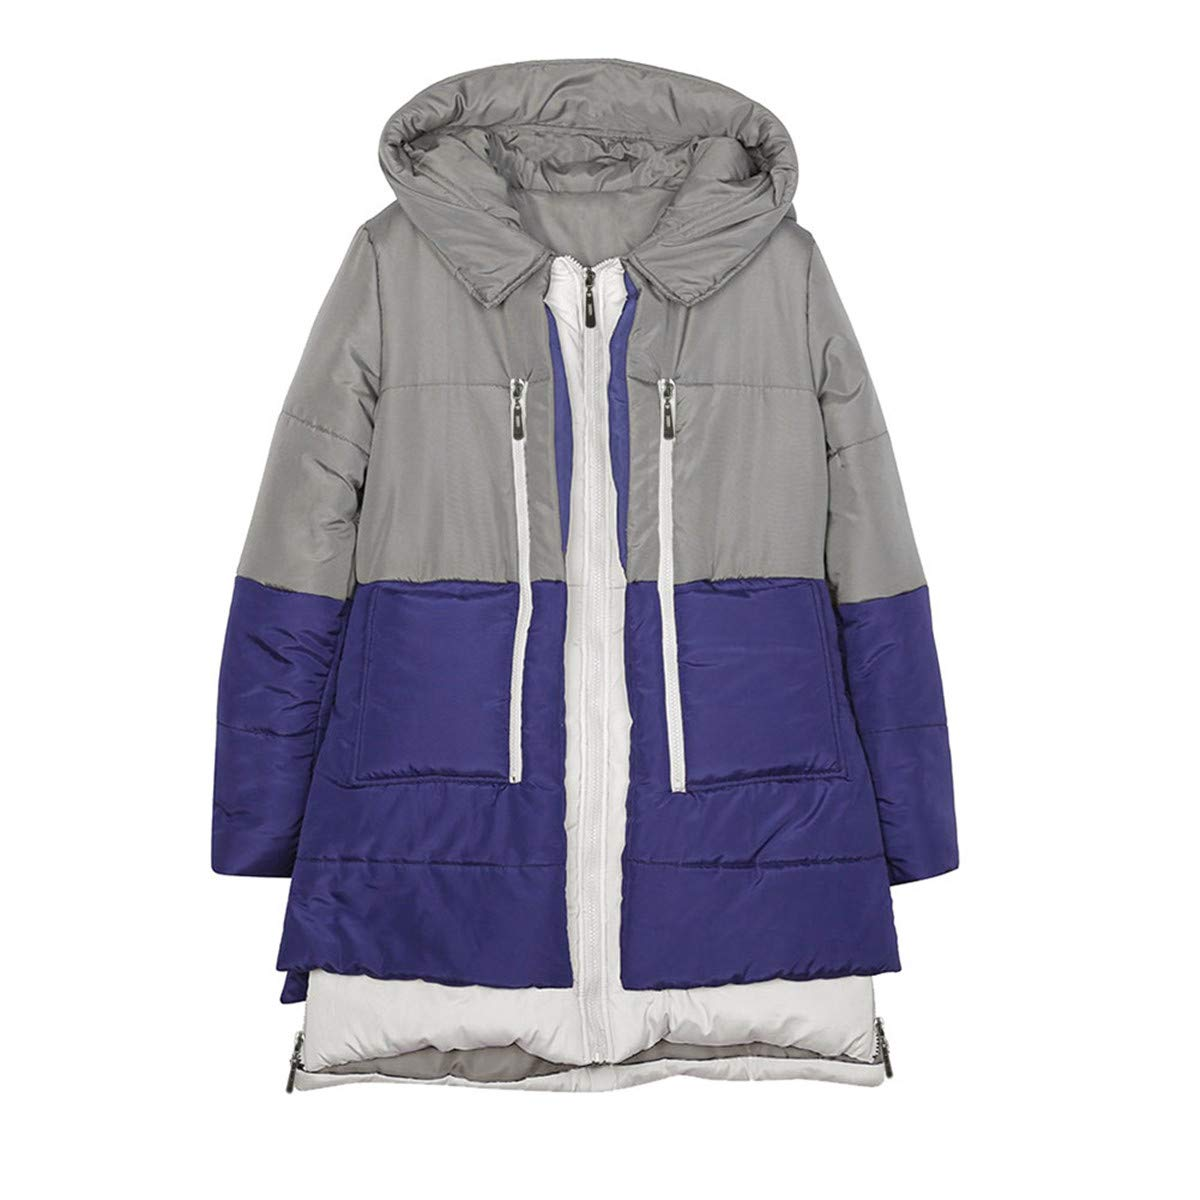 Maduang Women's Winter Jacket Cotton Coat Casual Loose Long Sleeve Hooded Outwear